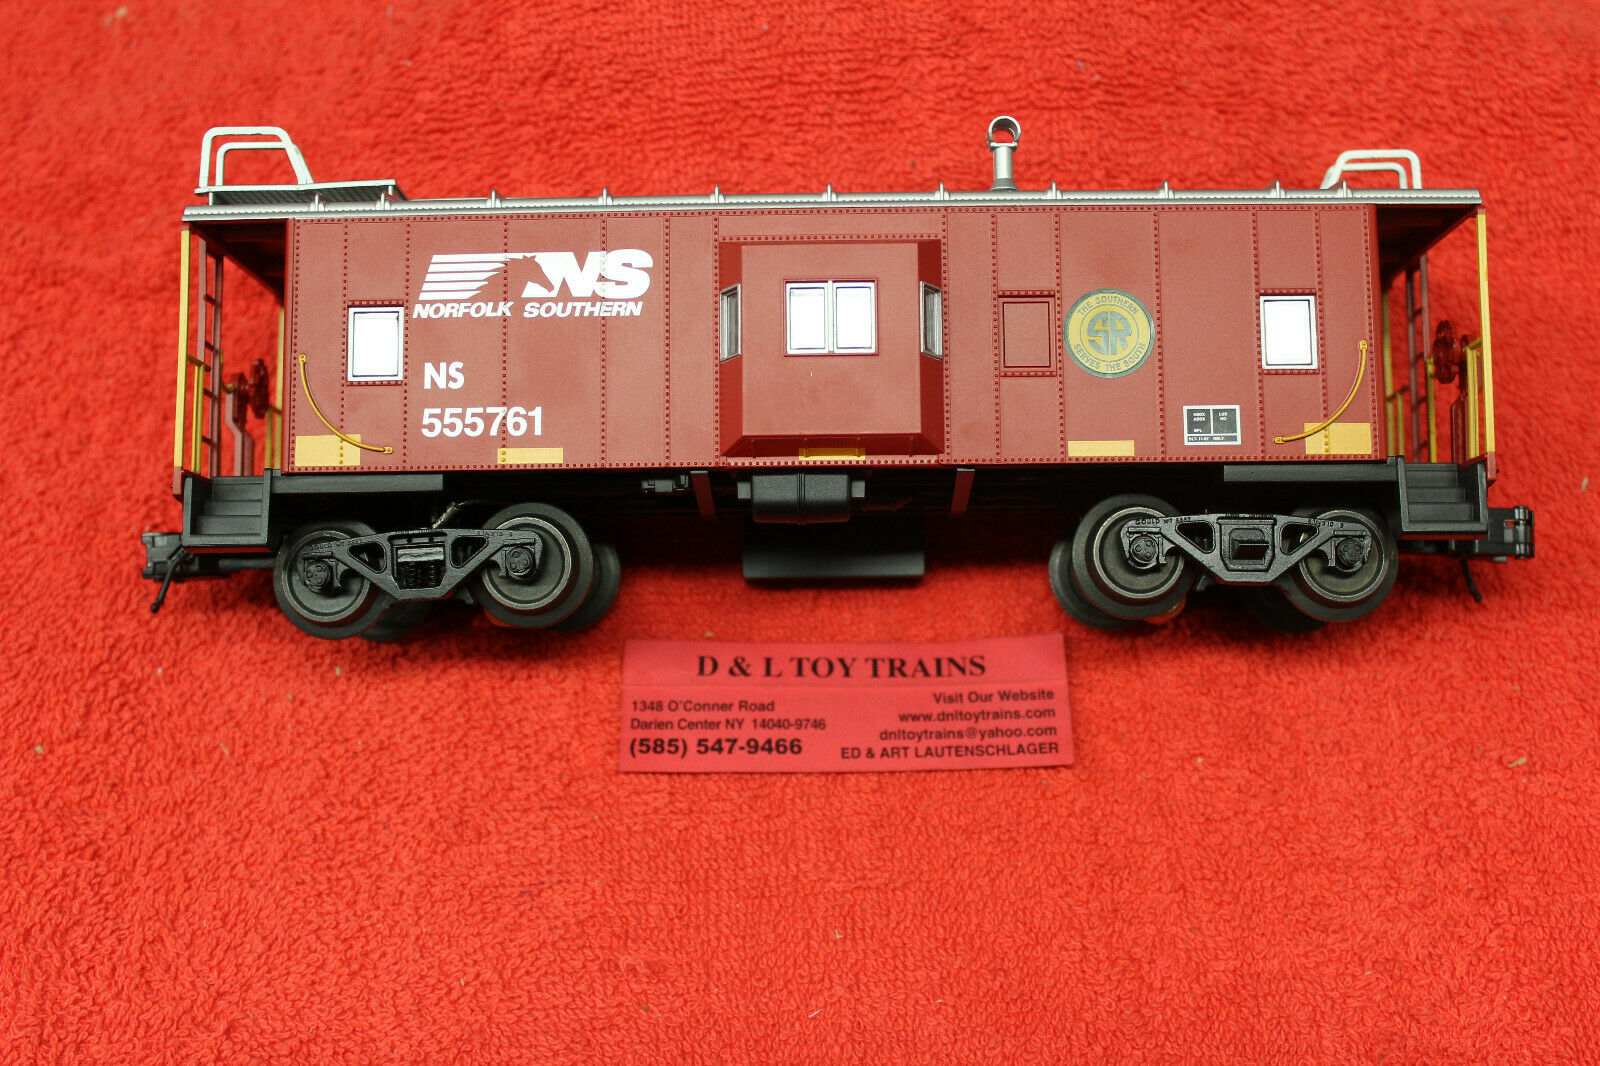 2001740 Norfolk Southern Bay finestra Caboose 3 Rail nuovo IN scatola